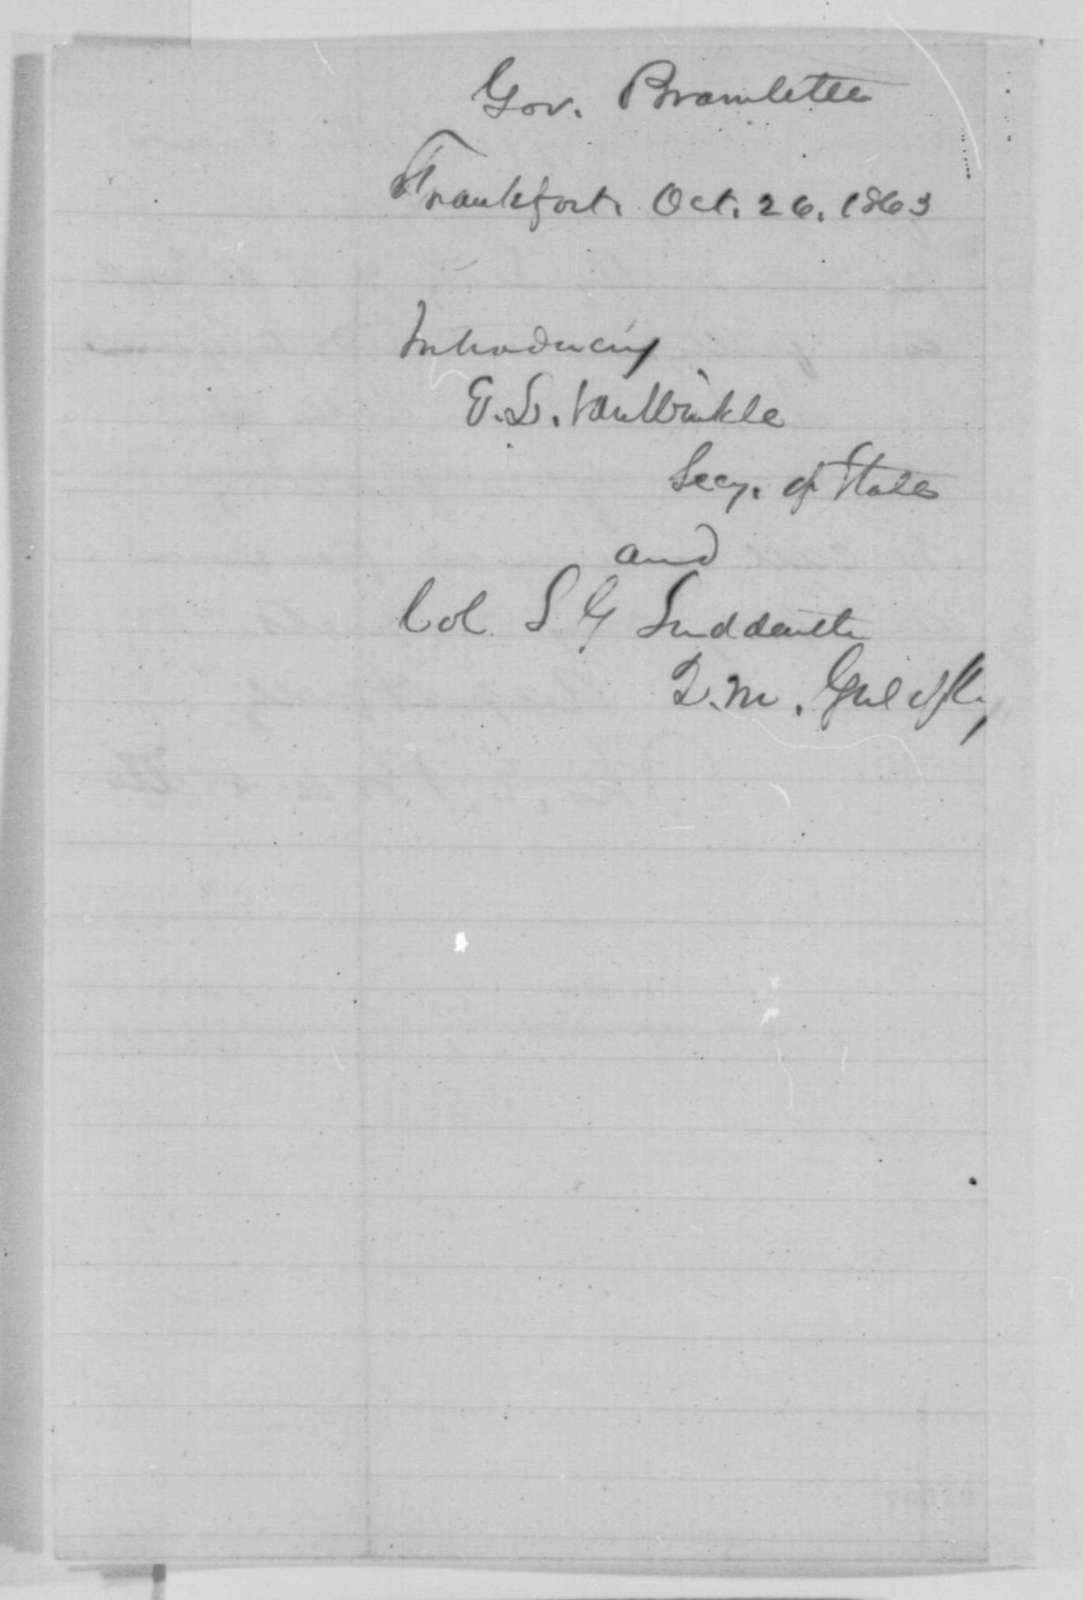 Thomas E. Bramlette to Abraham Lincoln, Monday, October 26, 1863  (Introduces E. L. Van Winkle and S. G. Suddarth)